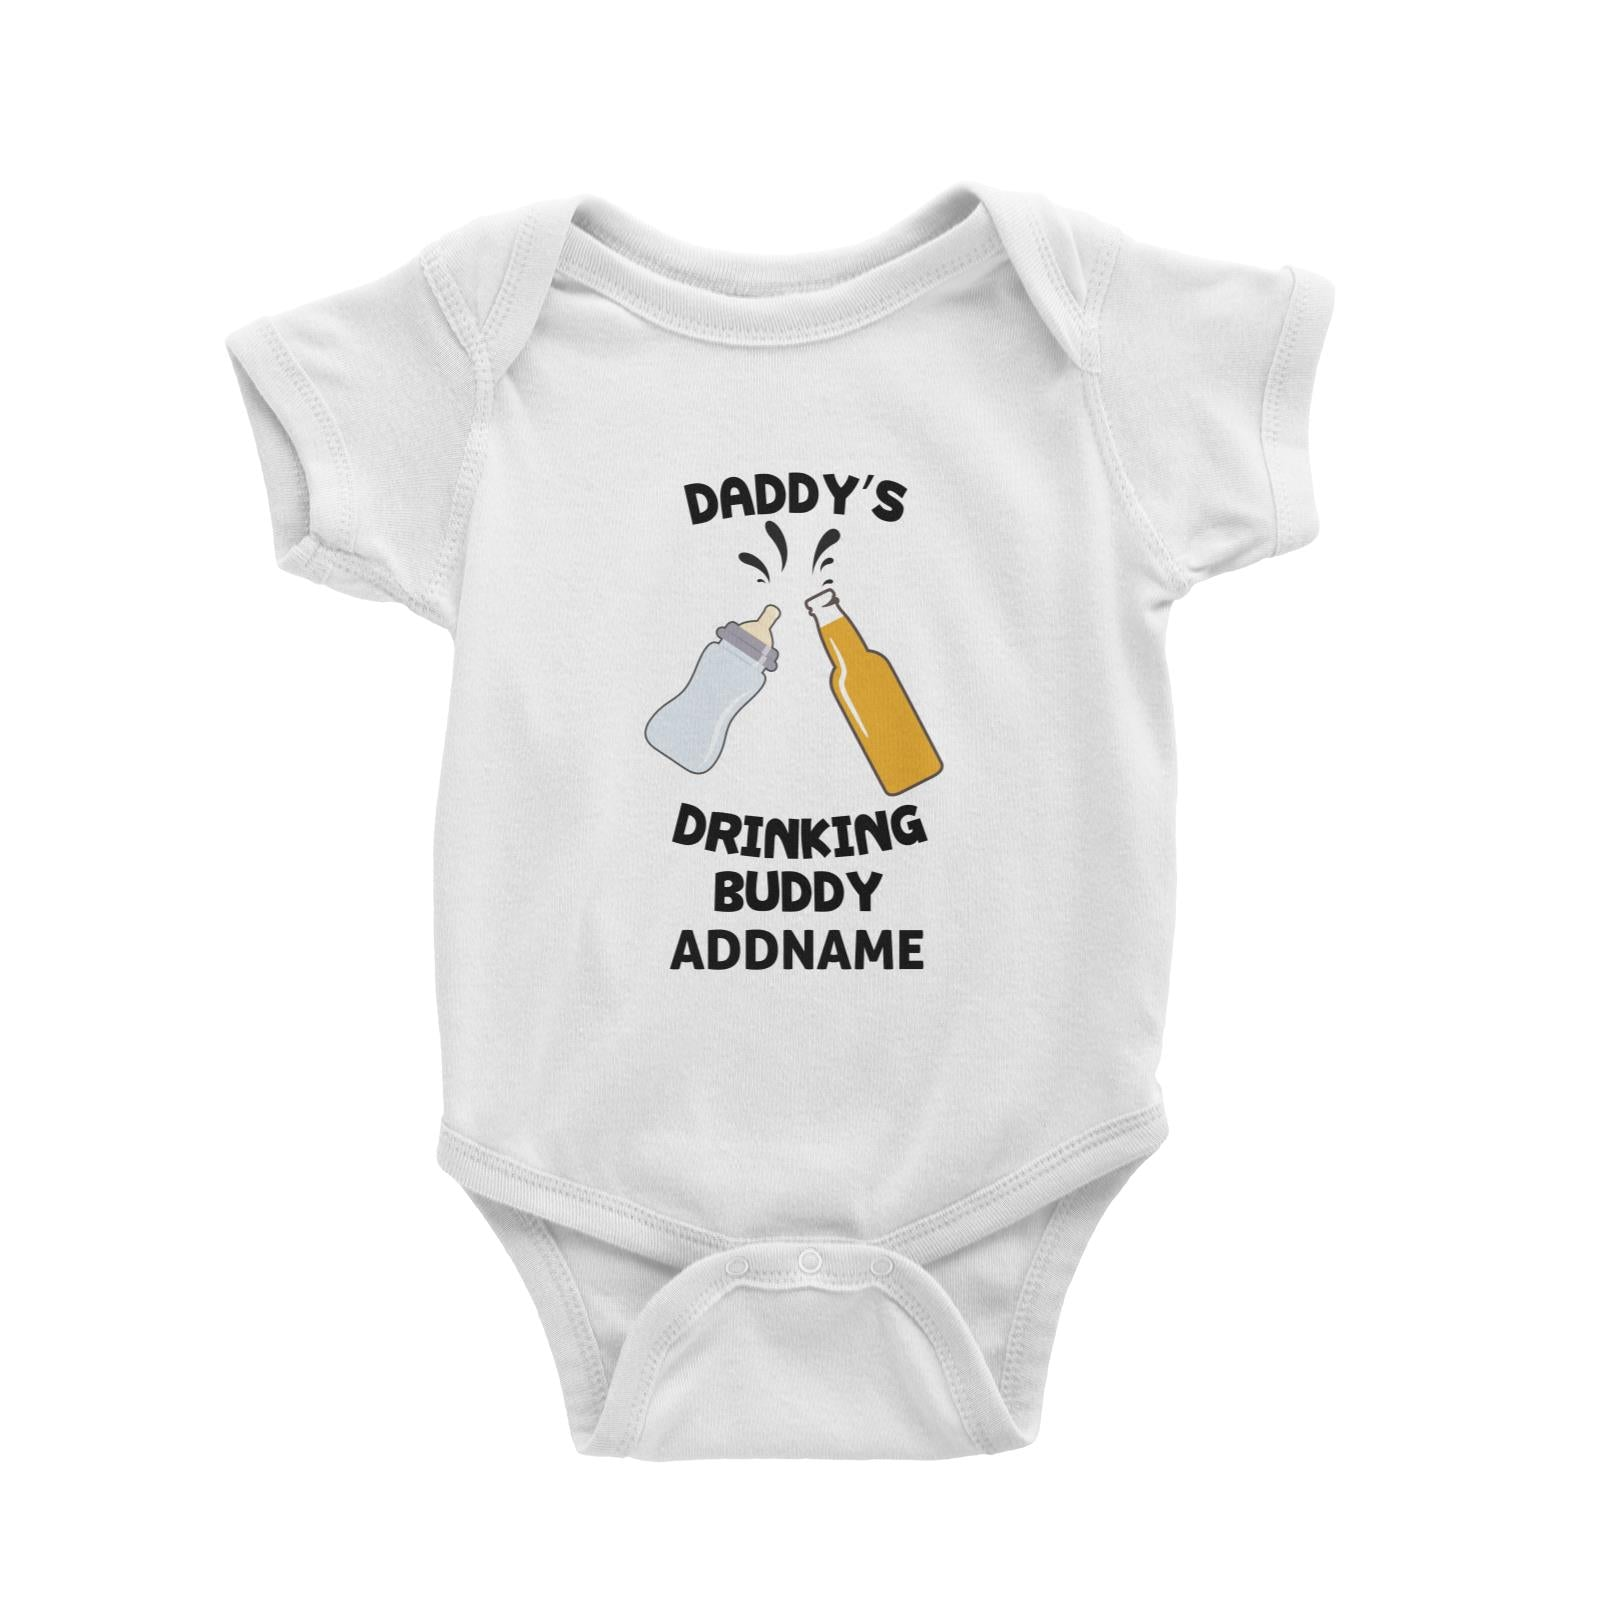 Daddy's Drinking Buddy Addname Baby Romper Personalizable Designs Basic Newborn